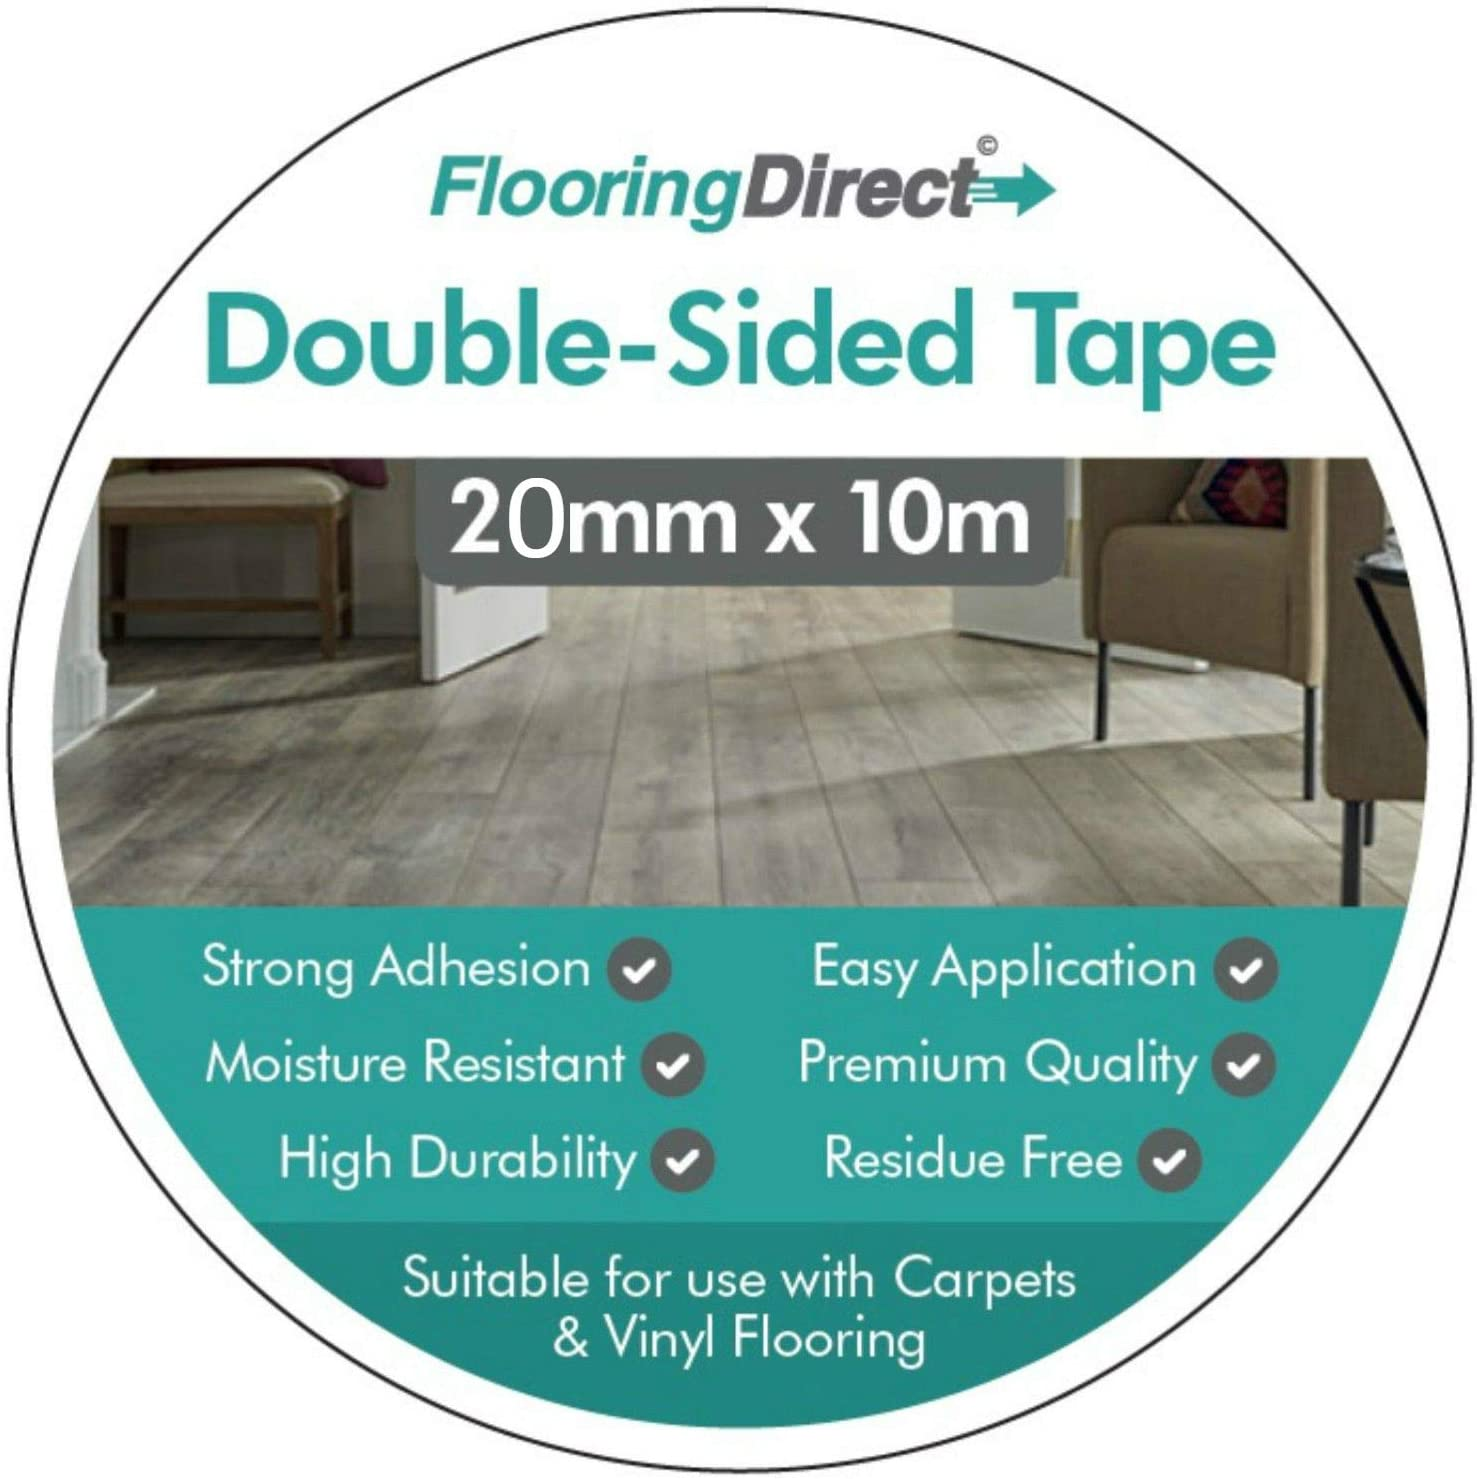 Double Sided Multi Purpose Carpet Tape Suitable for Carpet and Vinyl 20mm x 10m